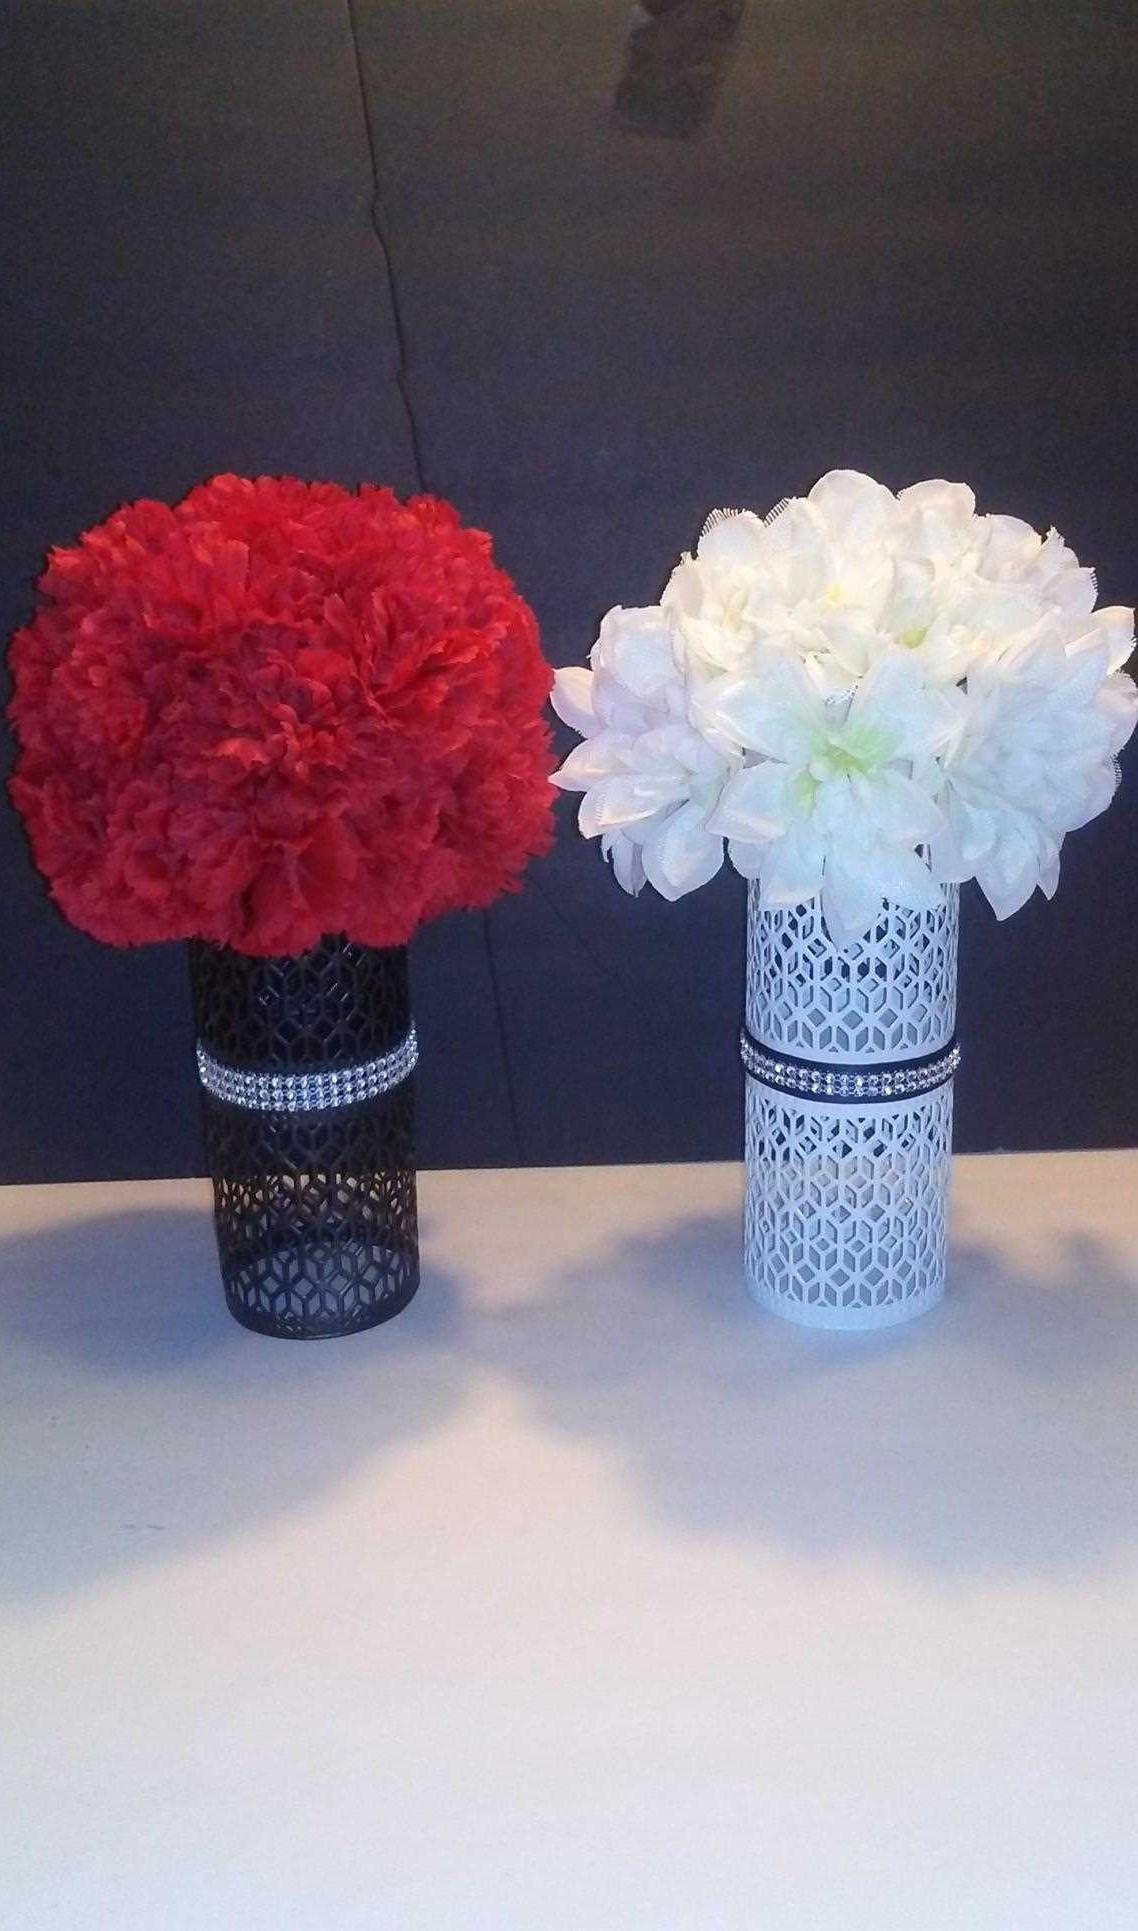 wedding vase ideas of 26 luxury wedding centerpieces ideas sokitchenlv inside wedding centerpieces ideas amazing dollar tree wedding decorations awesome h vases dollar vase i 0d of